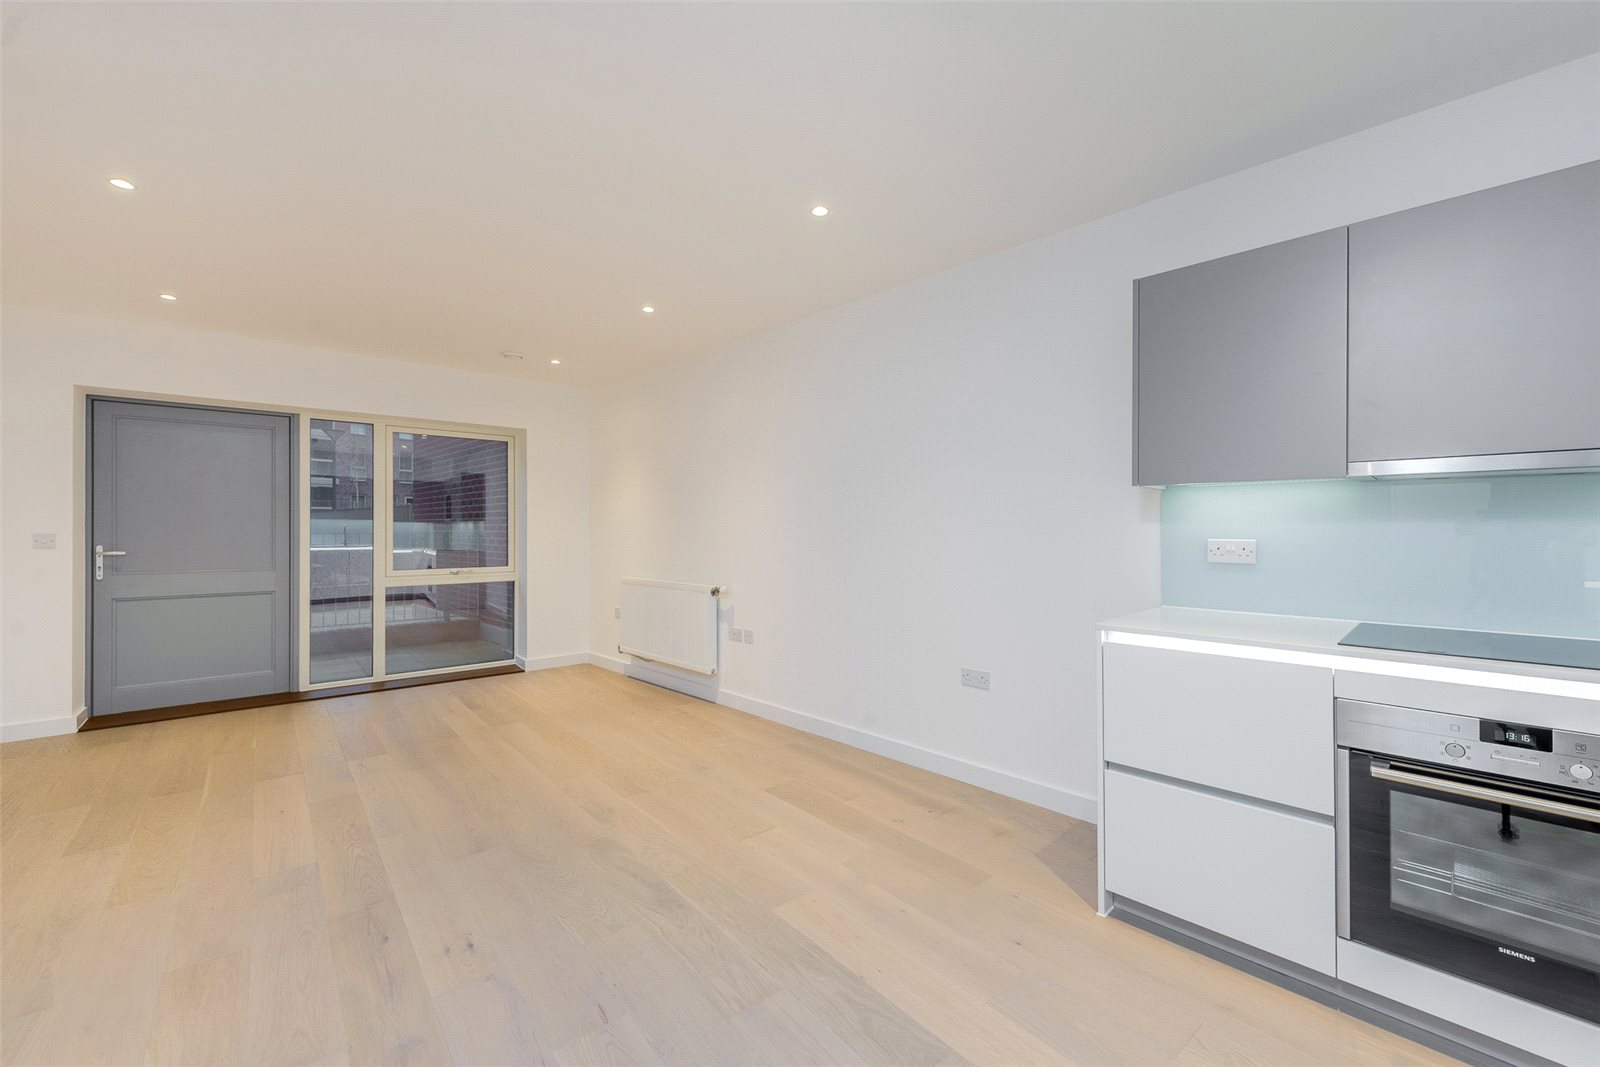 2 Bedrooms Apartment Flat for sale in Collins Building, Fellows Square, Cricklewood, NW2